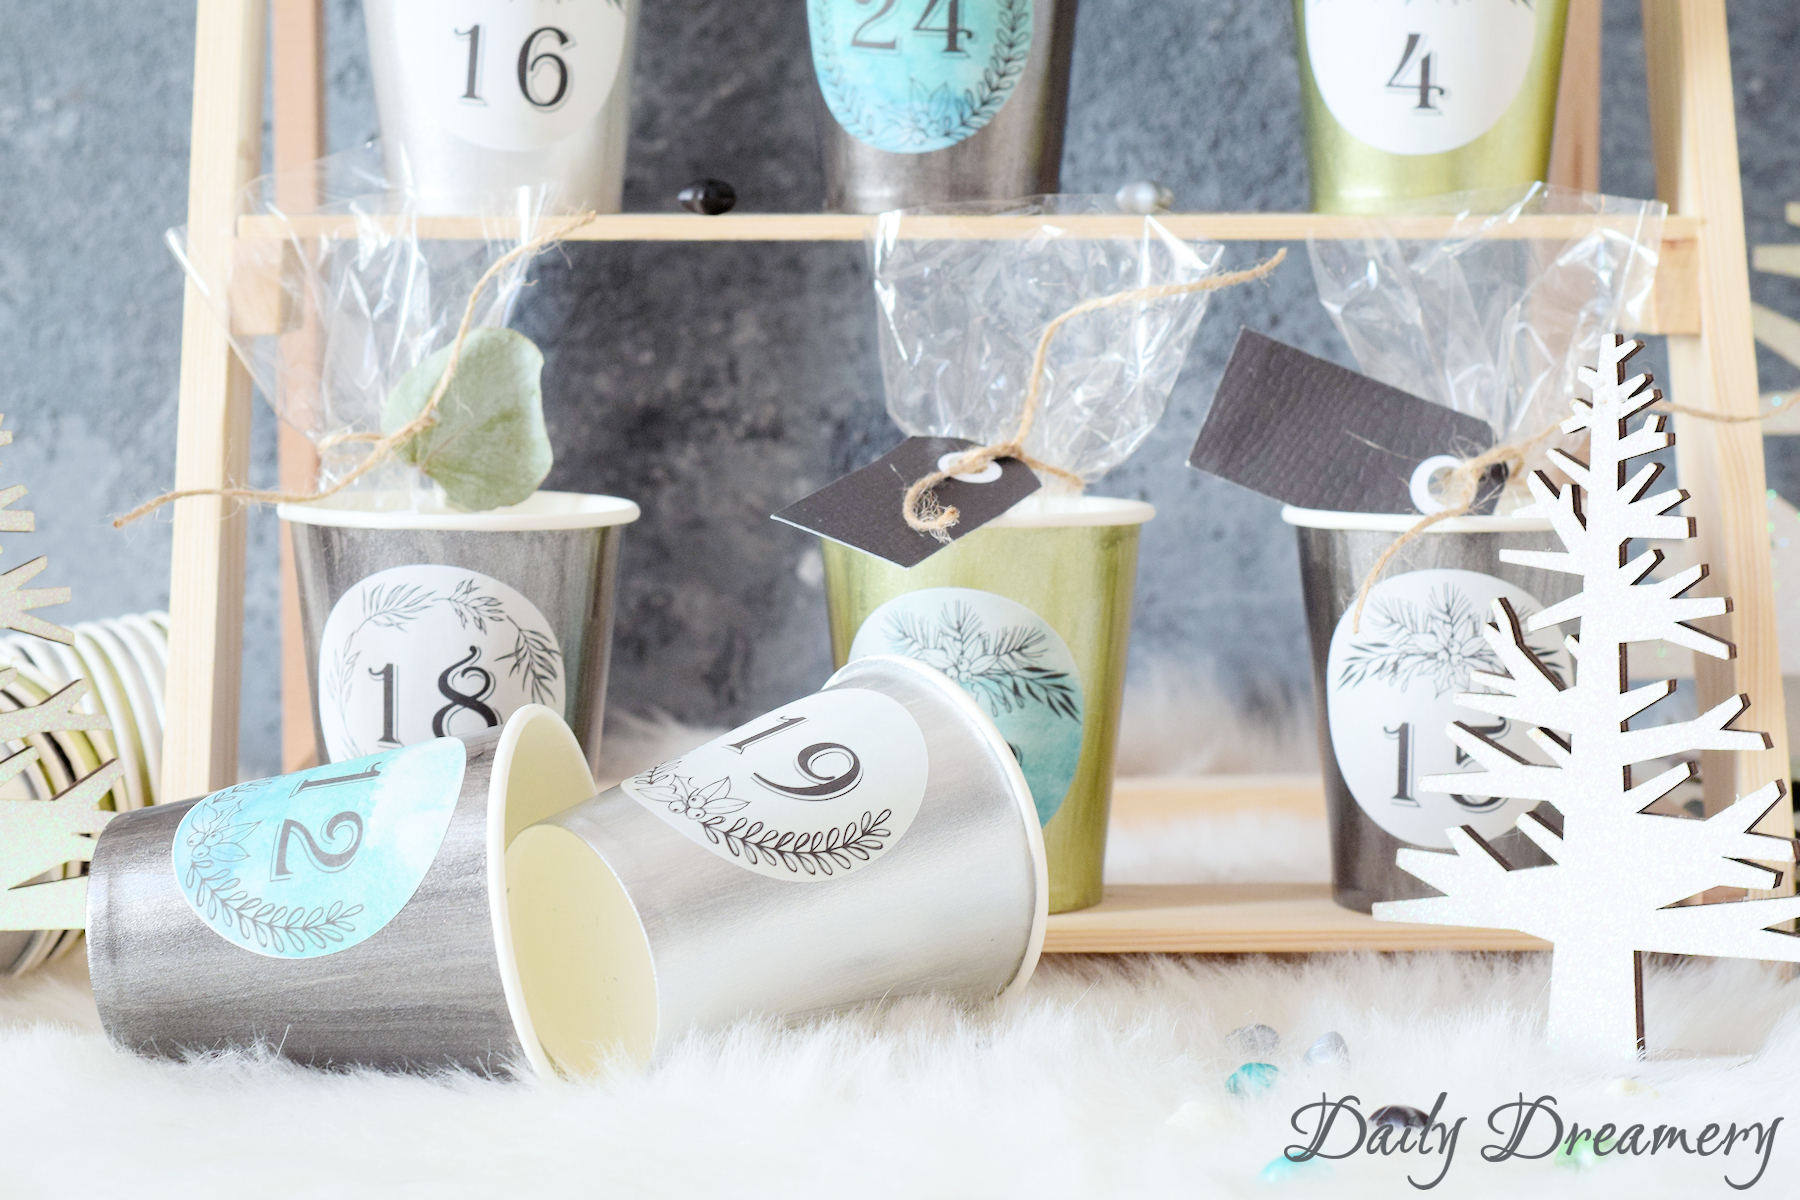 DIY-Adventskalender mit Stickern von Daily Dreamery #adventskalender #weihnachten #diy